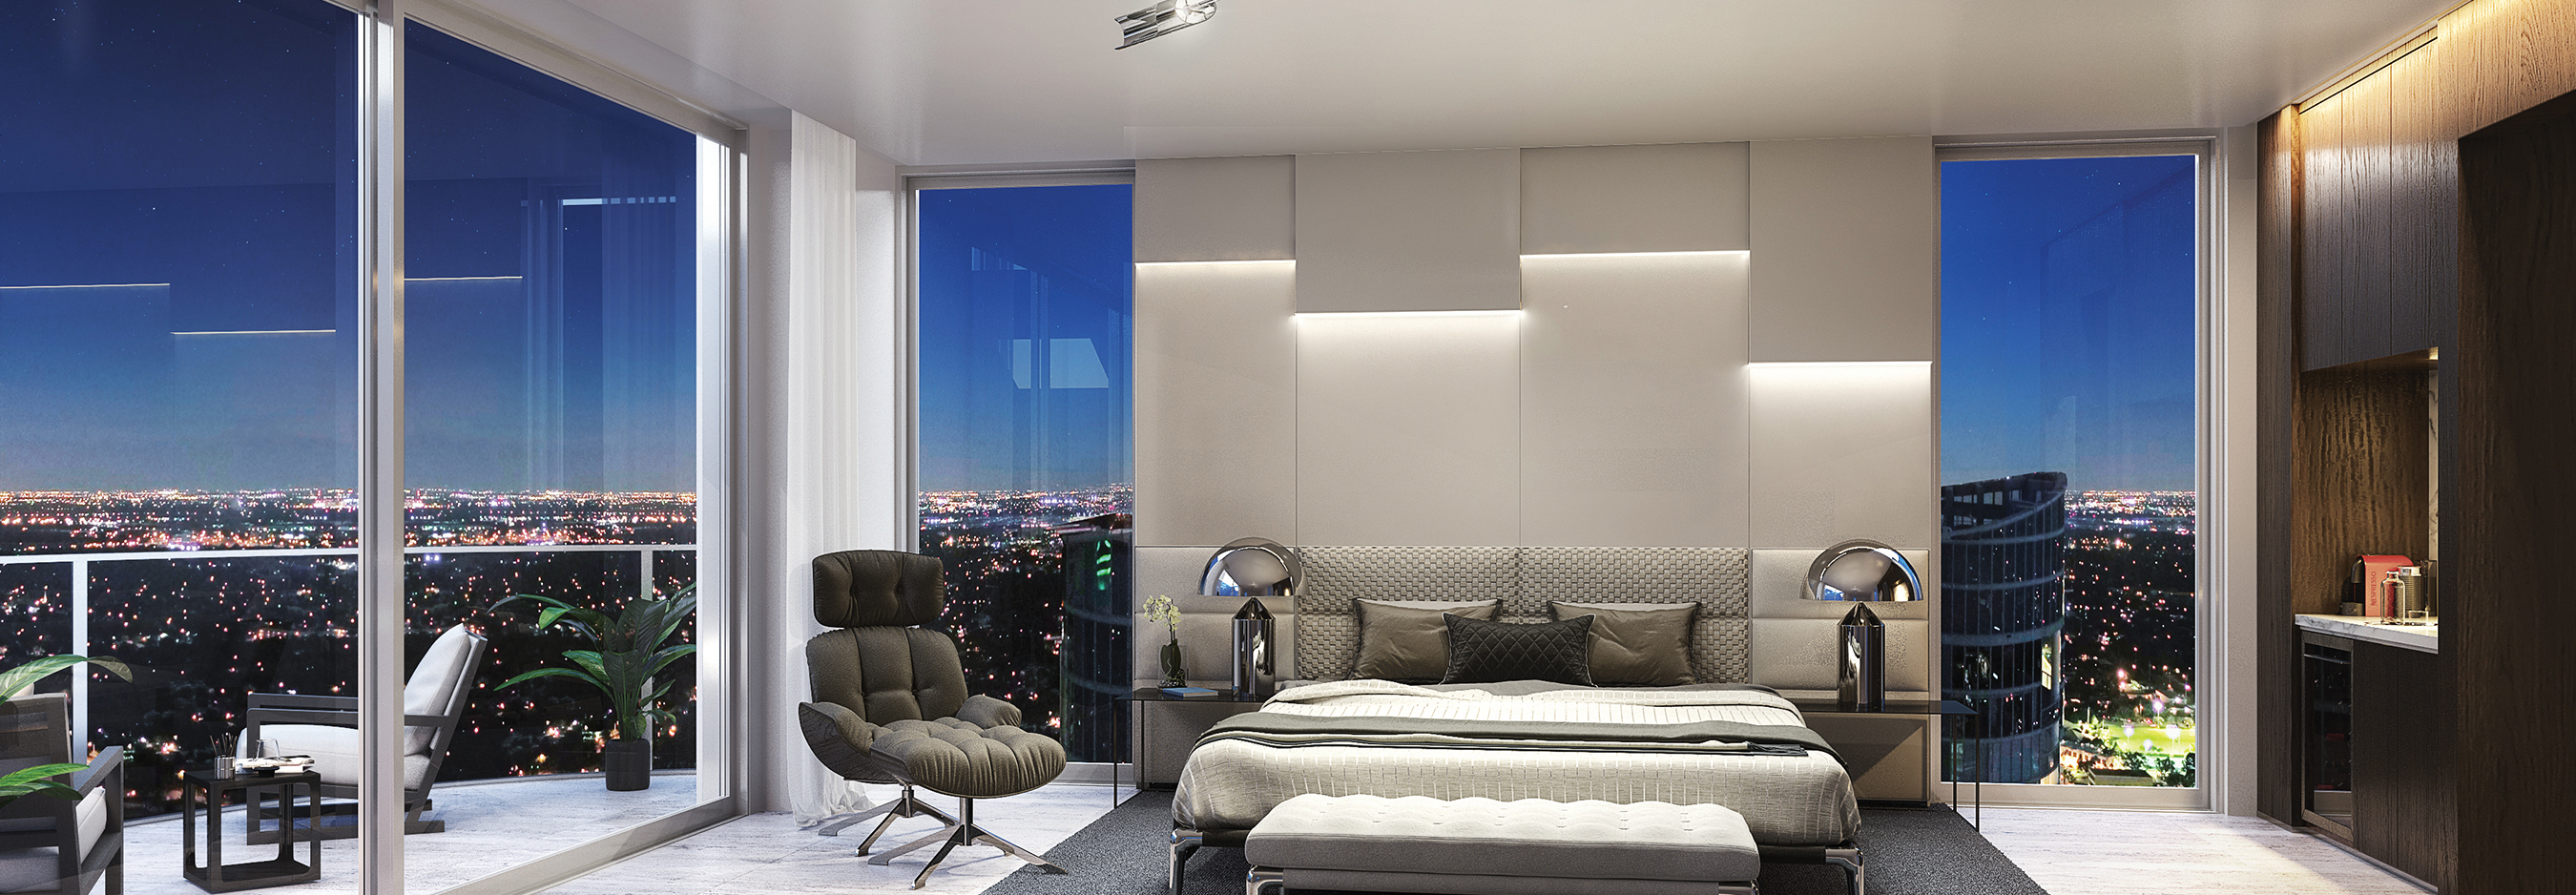 100 Las Olas Estate Penthouse Interior Master Suite Night Rendering